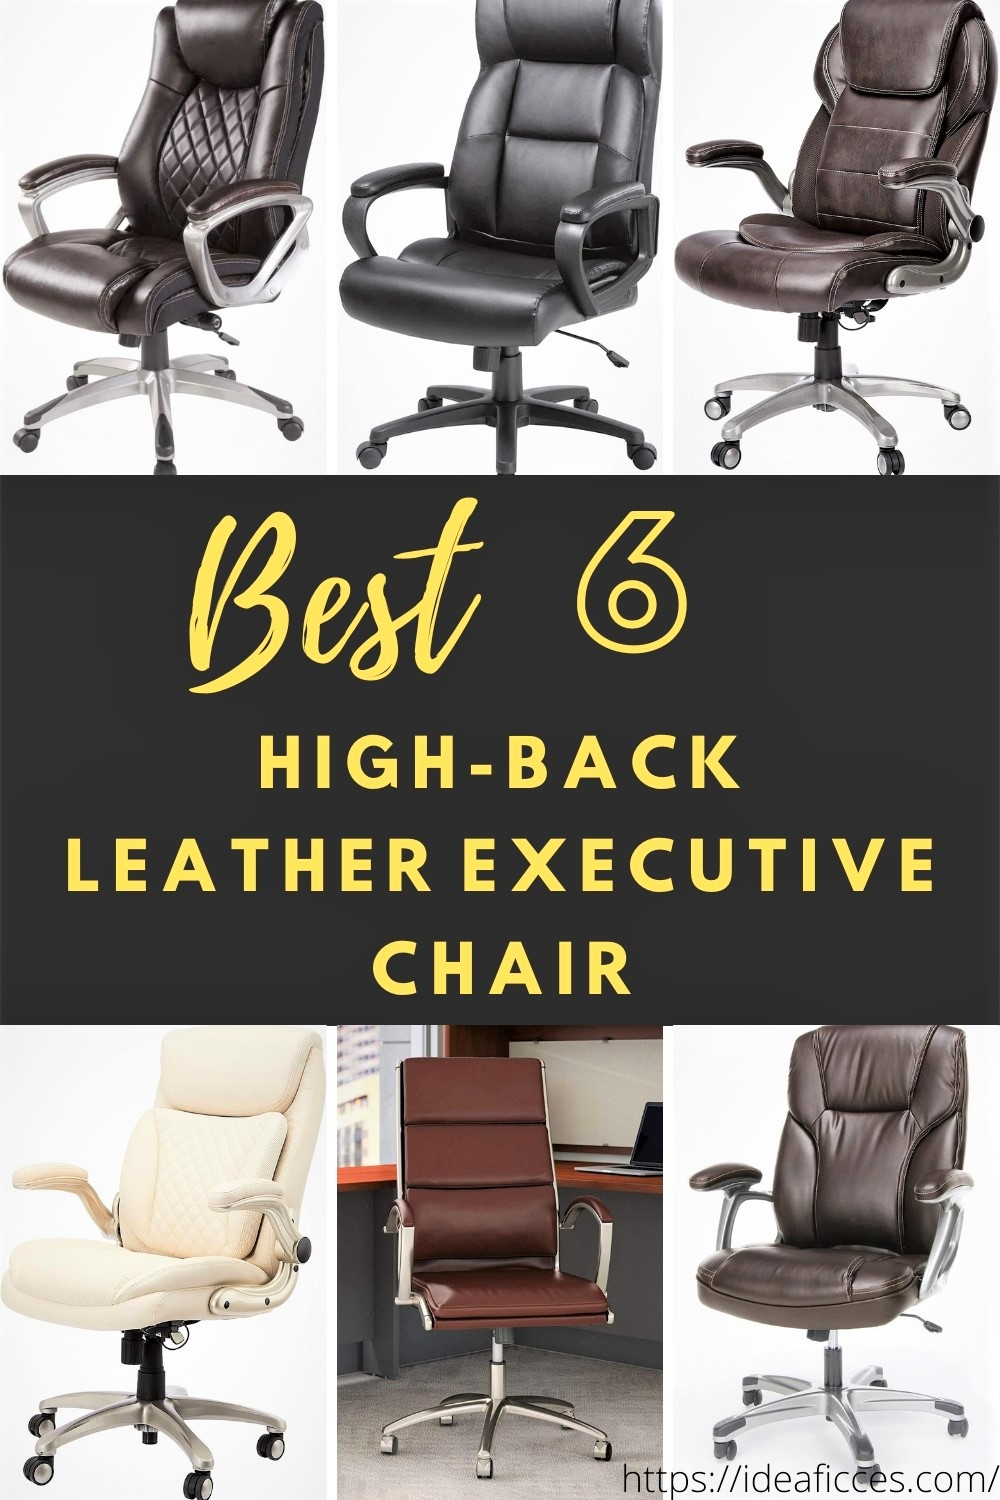 Best 6 High-Back Leather Executive Chair